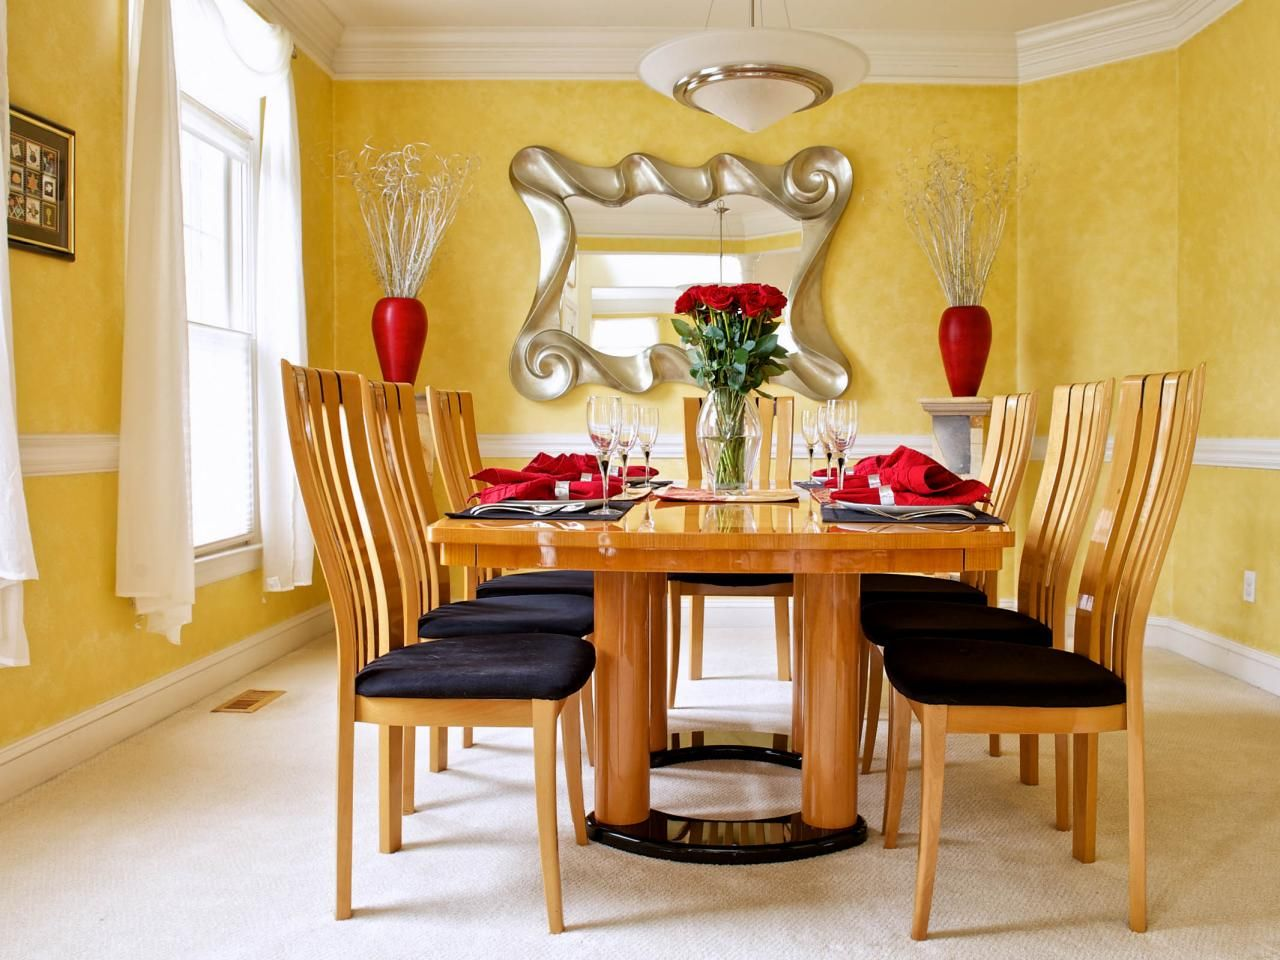 cool, contemporary bachelor pad | yellow dining room, room and spaces